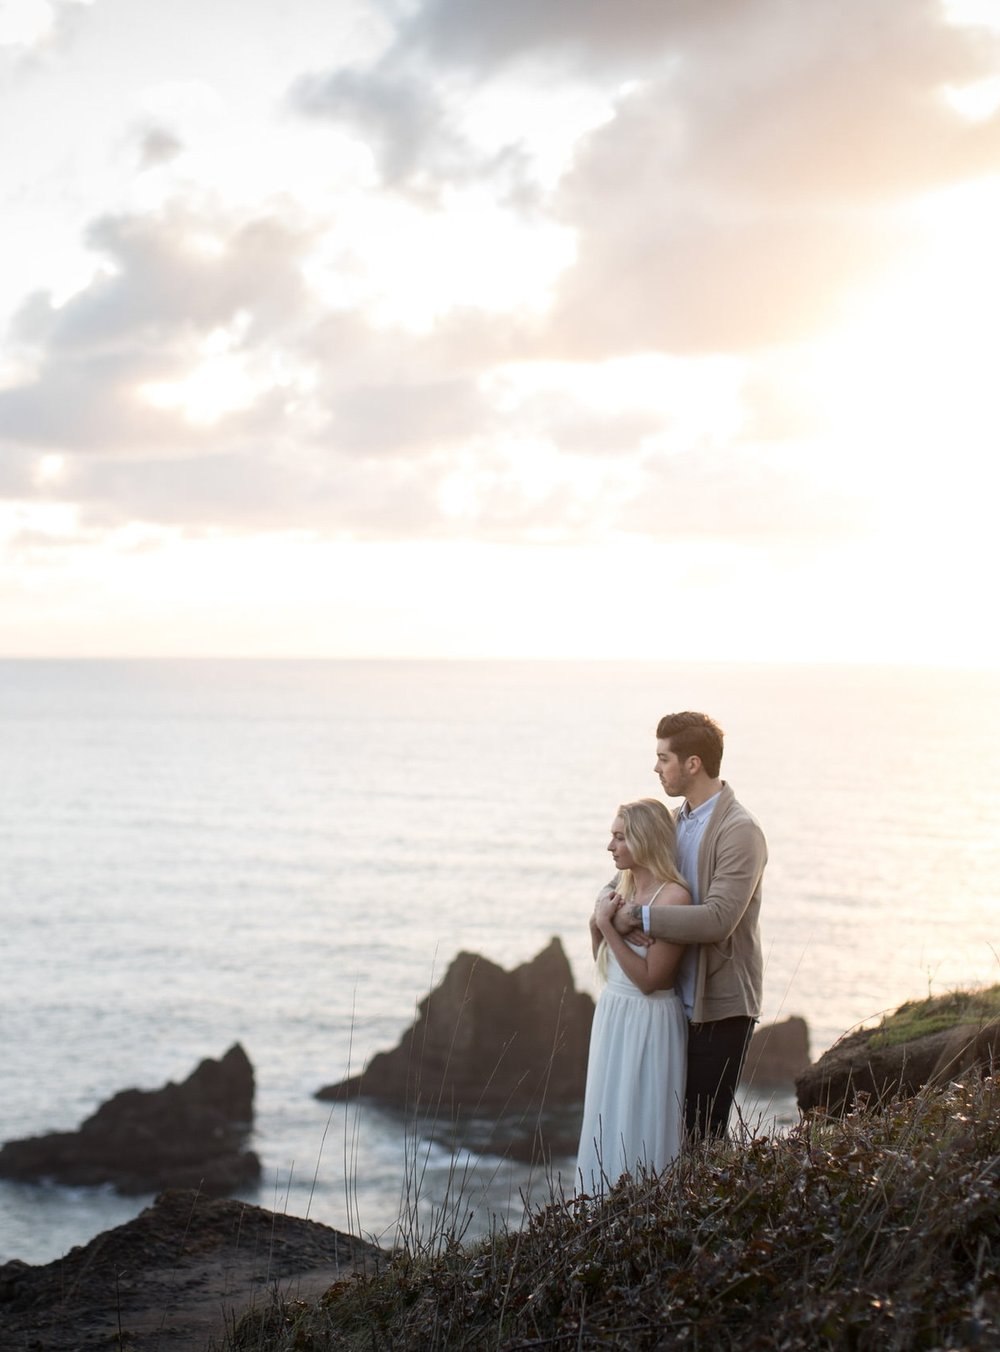 CANNONBEACHENGAGEMENTS (52 of 58).jpg